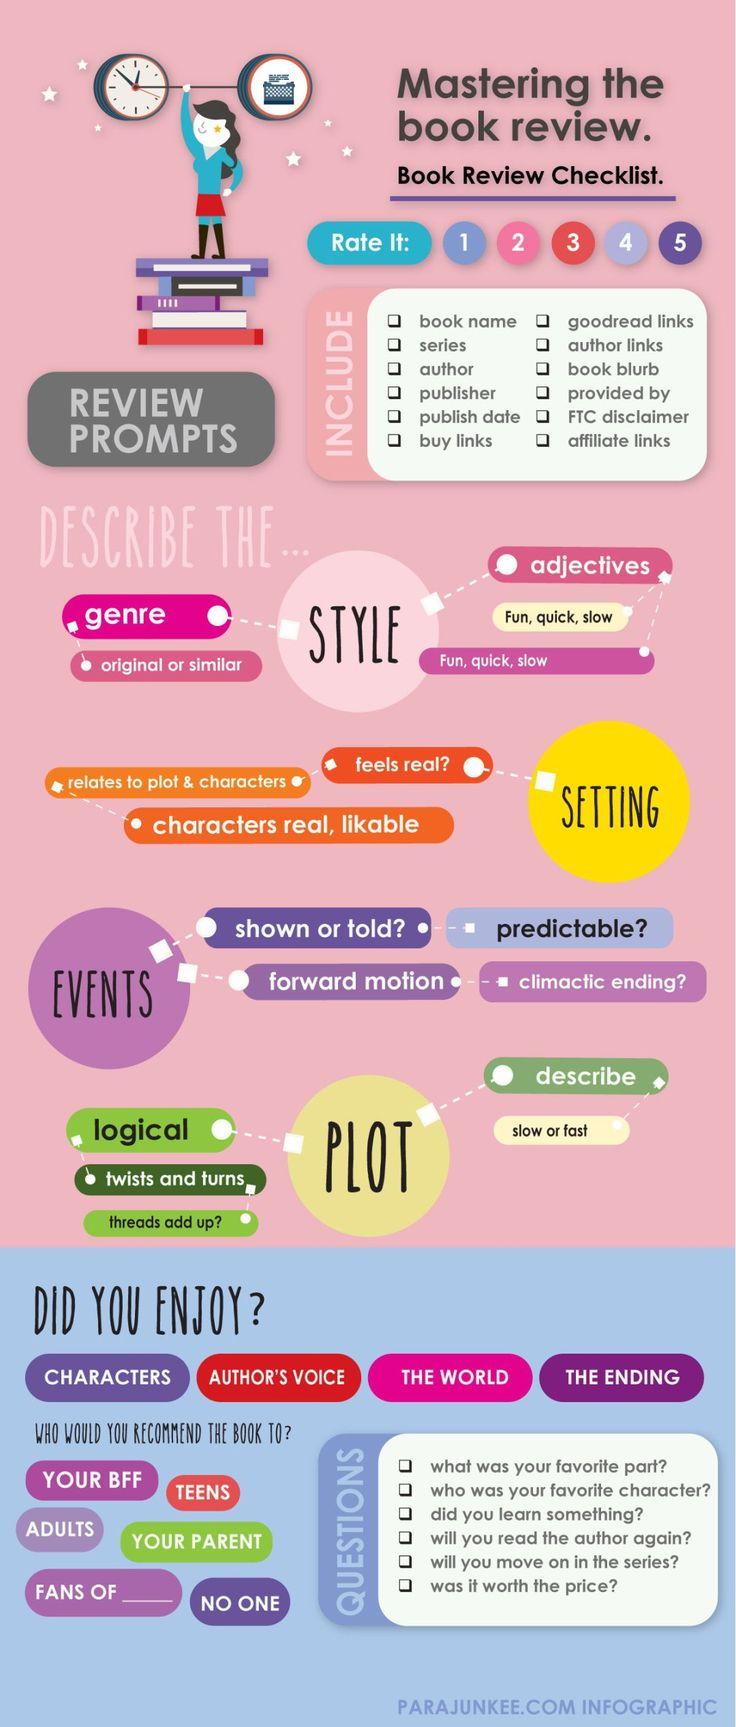 best book review sites ideas jobs for teens mastering the book review book review checklist infographic